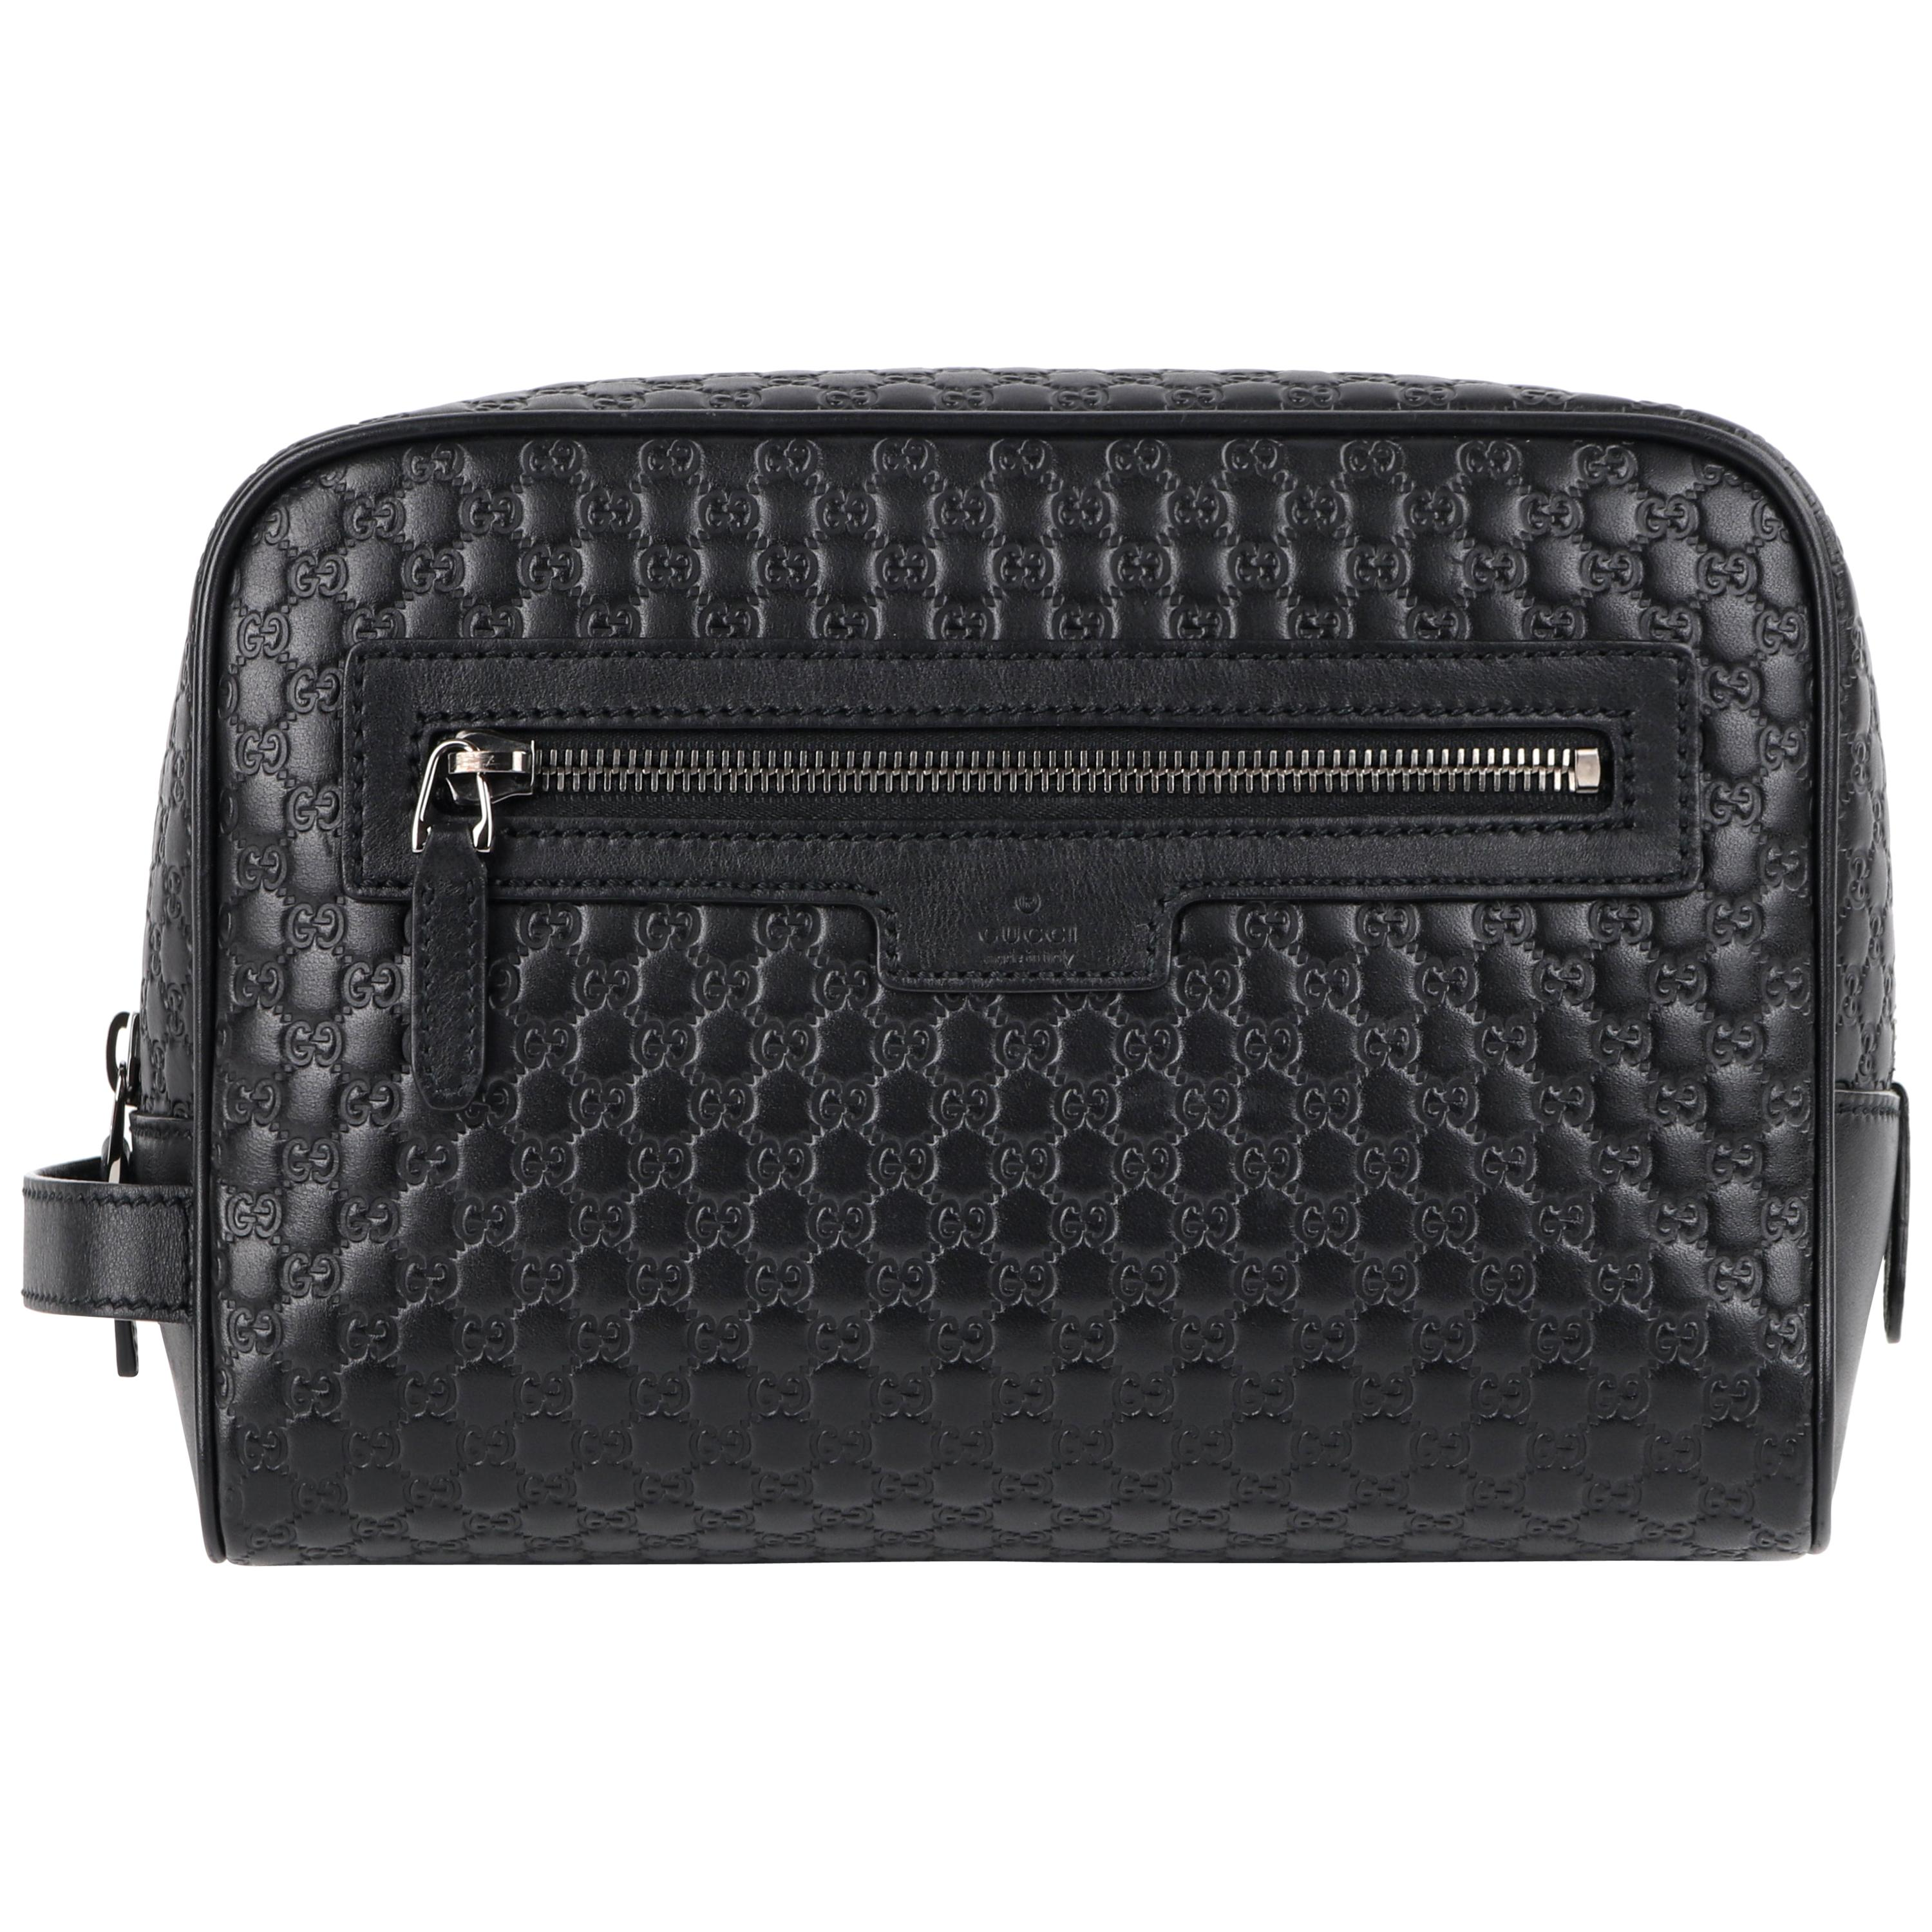 """GUCCI """"Microguccissima"""" Black Embossed Leather Zip Cosmetic Toiletry Travel Bag"""